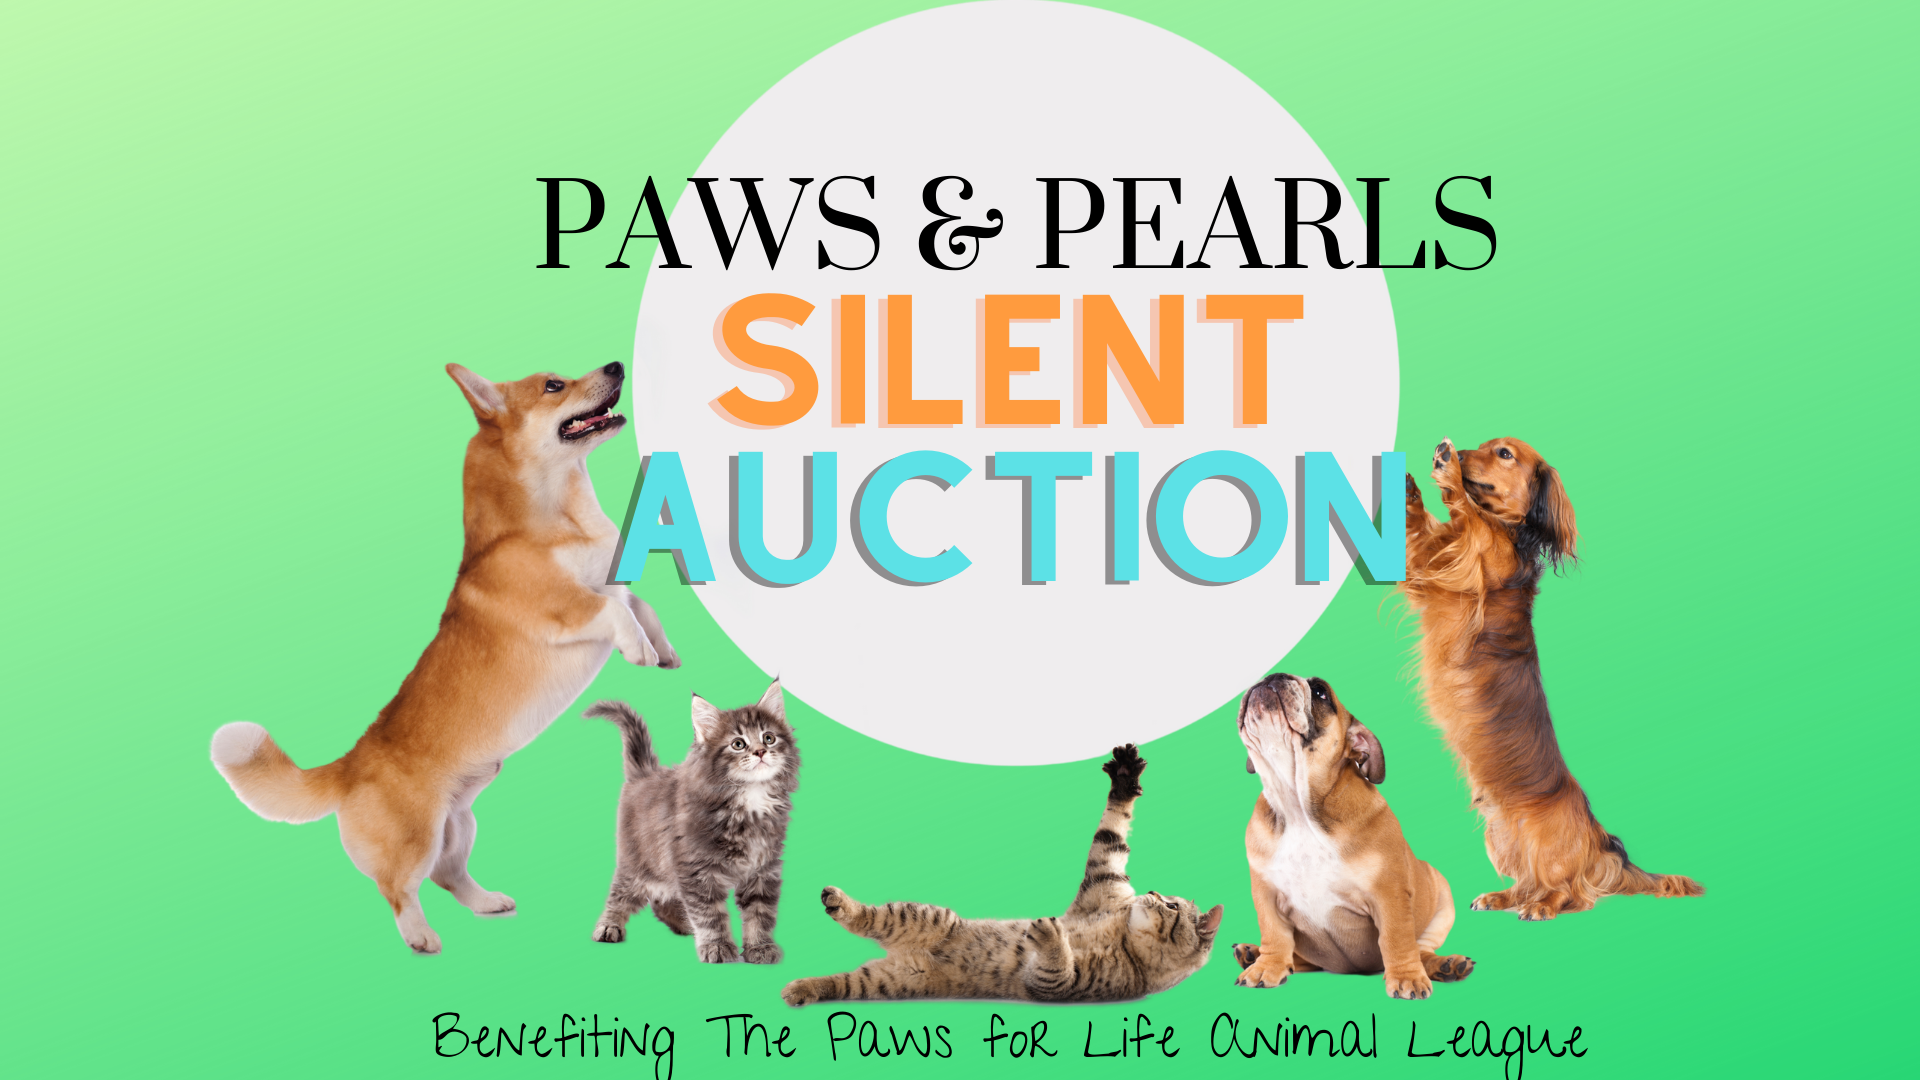 PAWS & Pearls Silent Auction